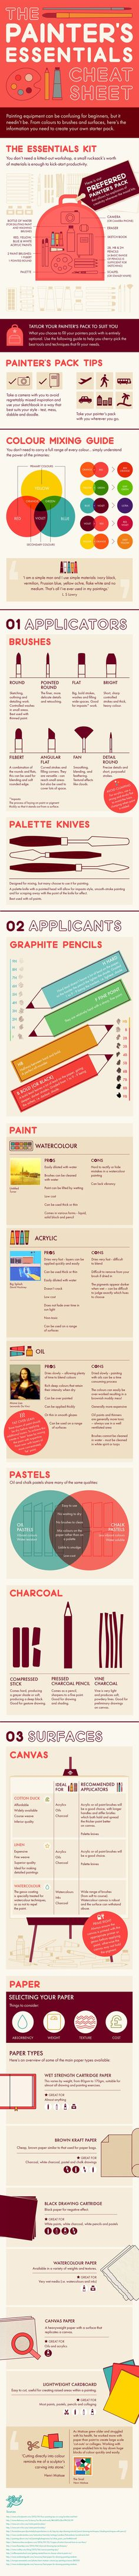 The Essential Painter's Cheat Sheet #Infographic #Art #Painting